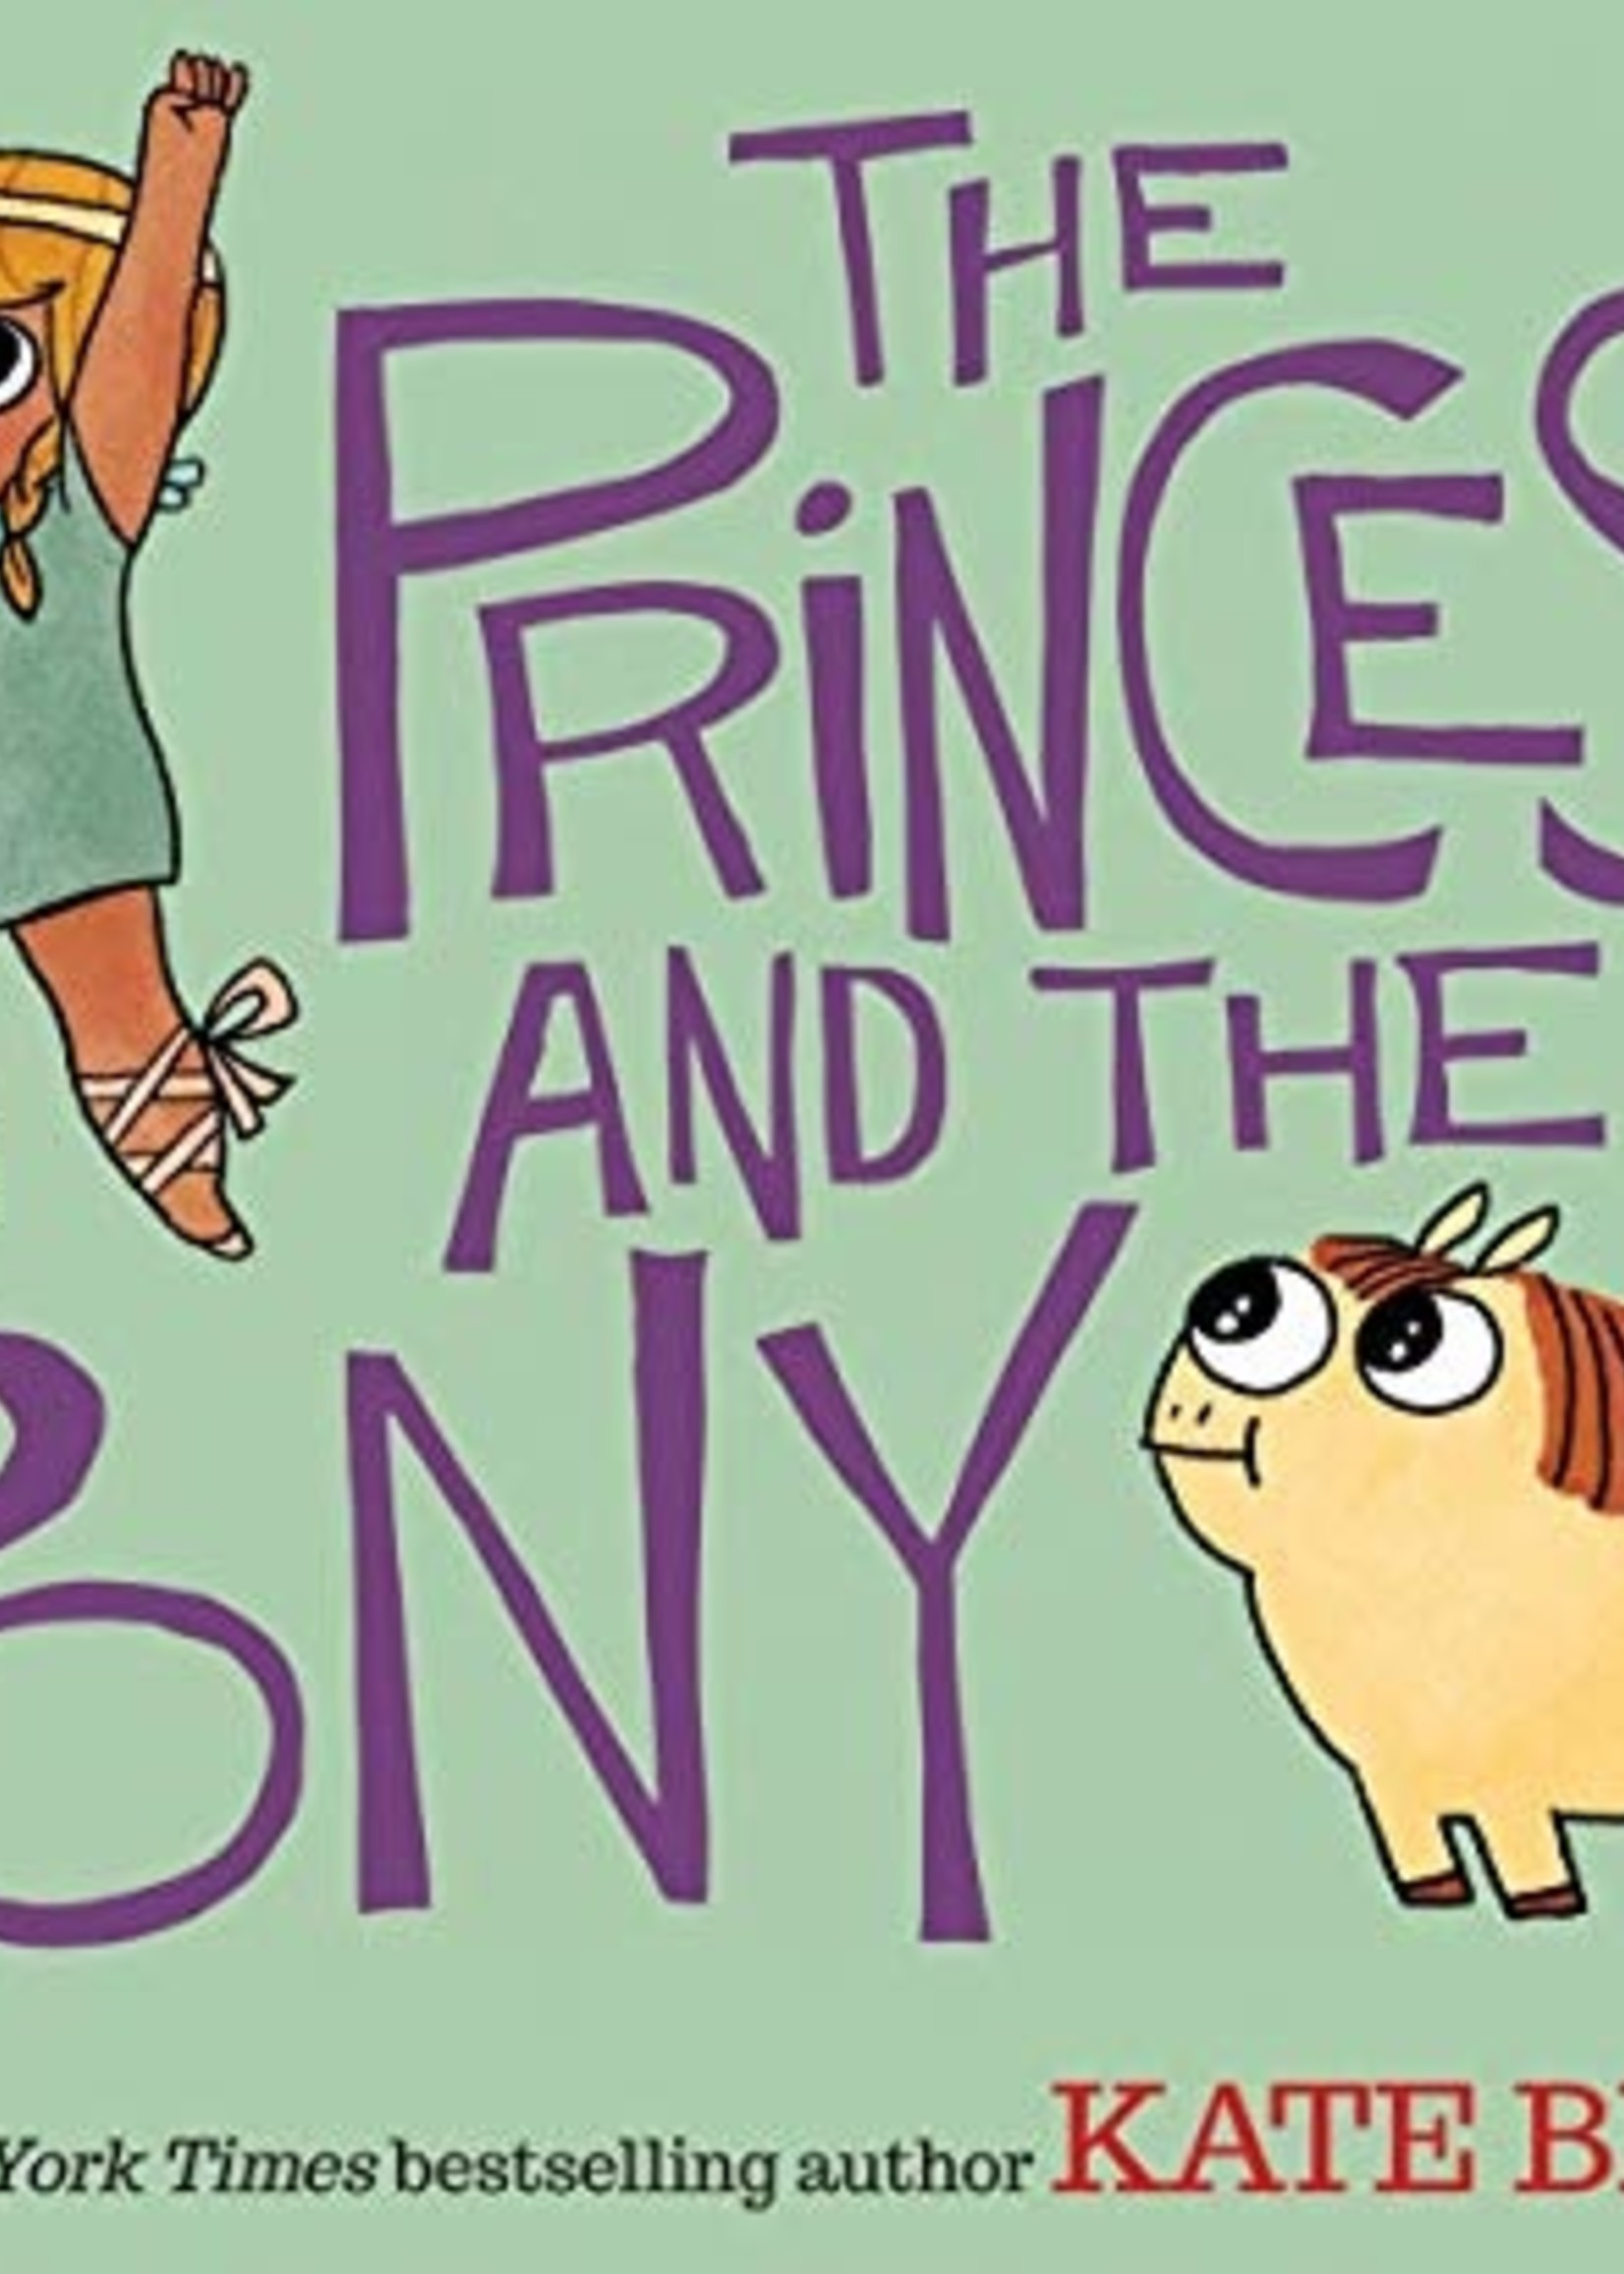 Princess and the Pony - Hardcover